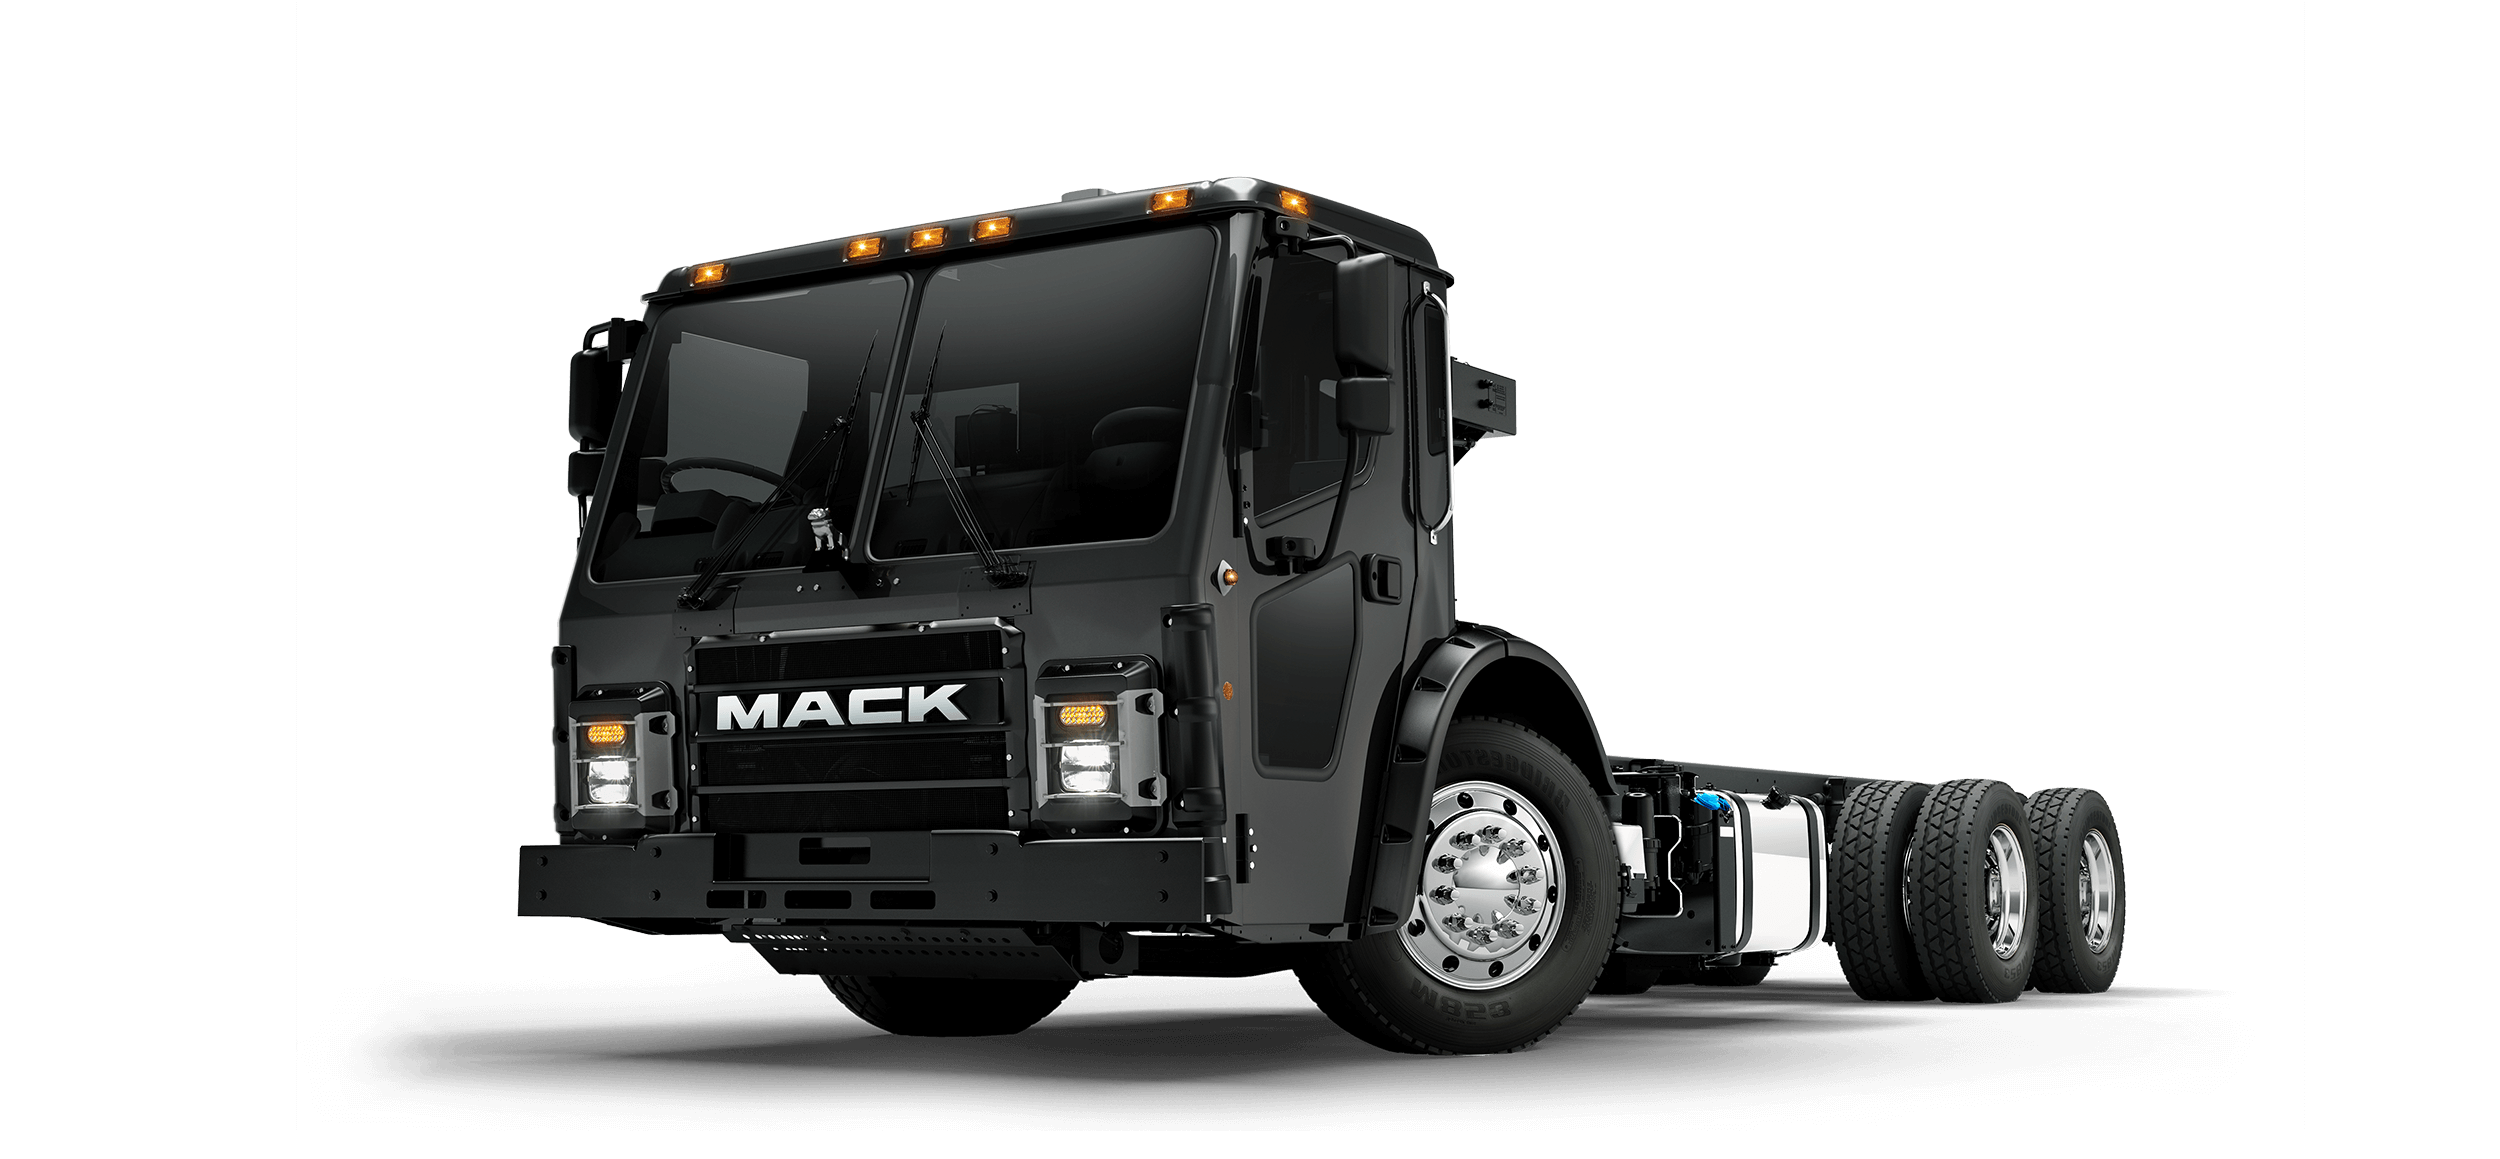 Mack Truck Windshield Glass Replacement Company Sacramento CA